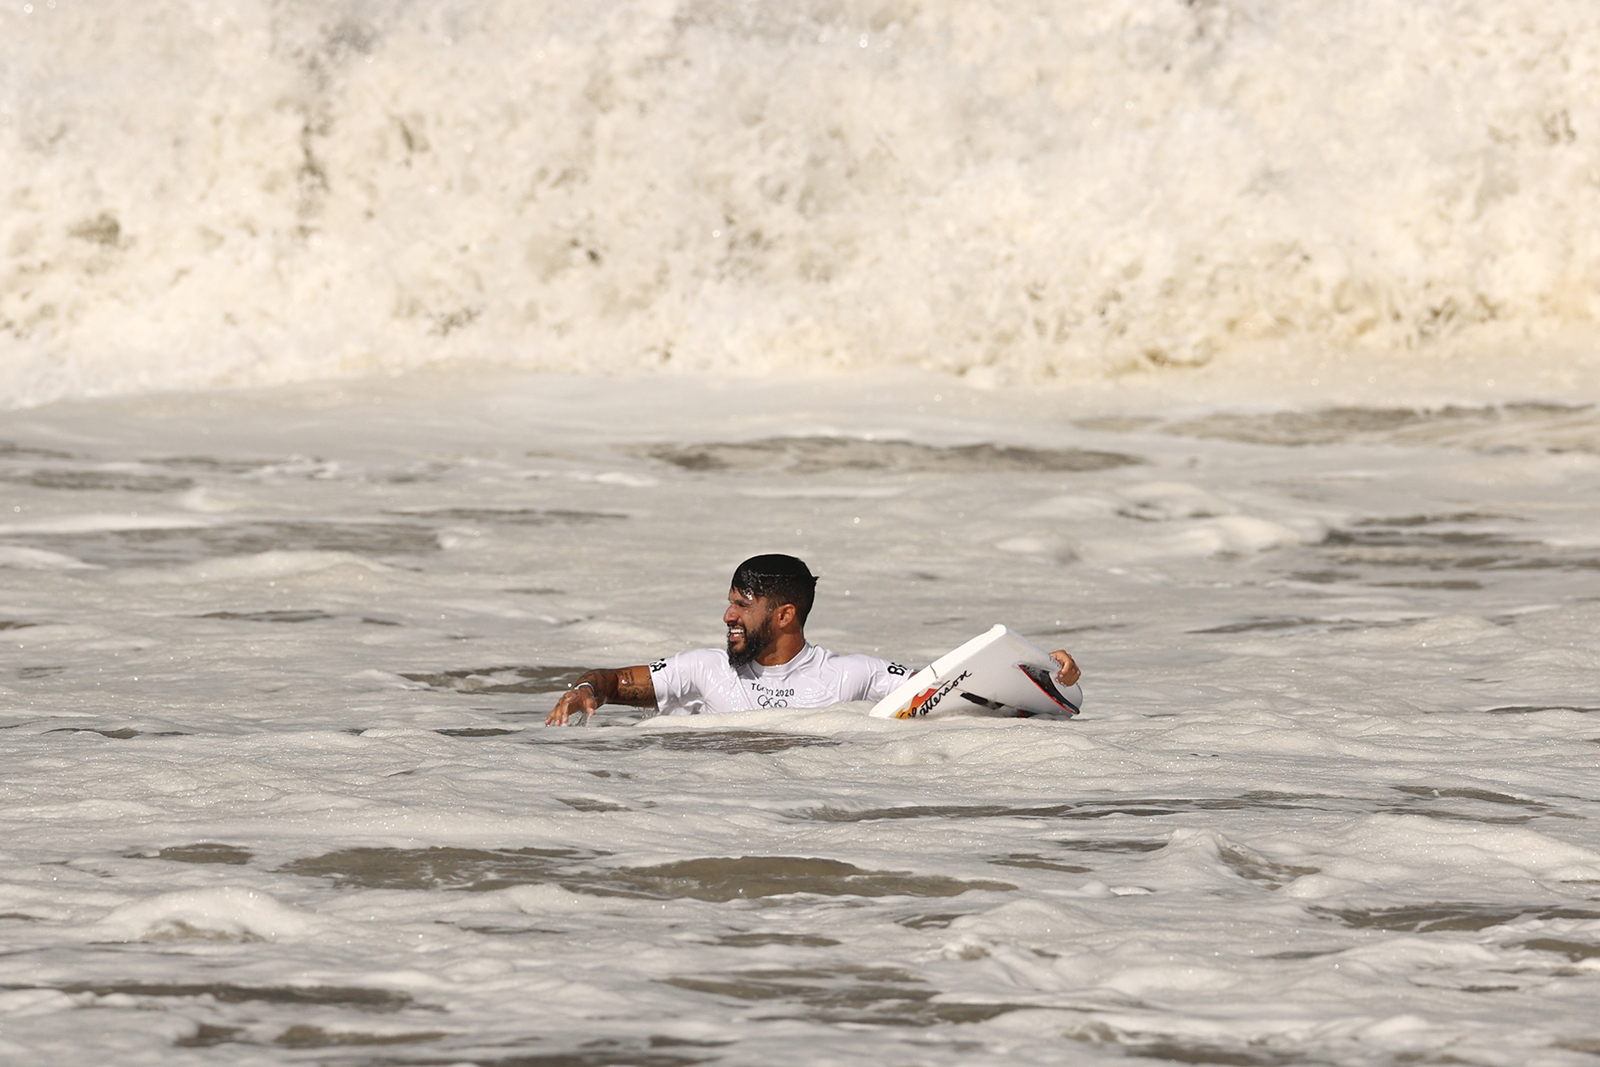 Italo Ferreira holds a broken board on his opening wave of the men's Gold Medal match at Tsurigasaki Surfing Beach on July 27.